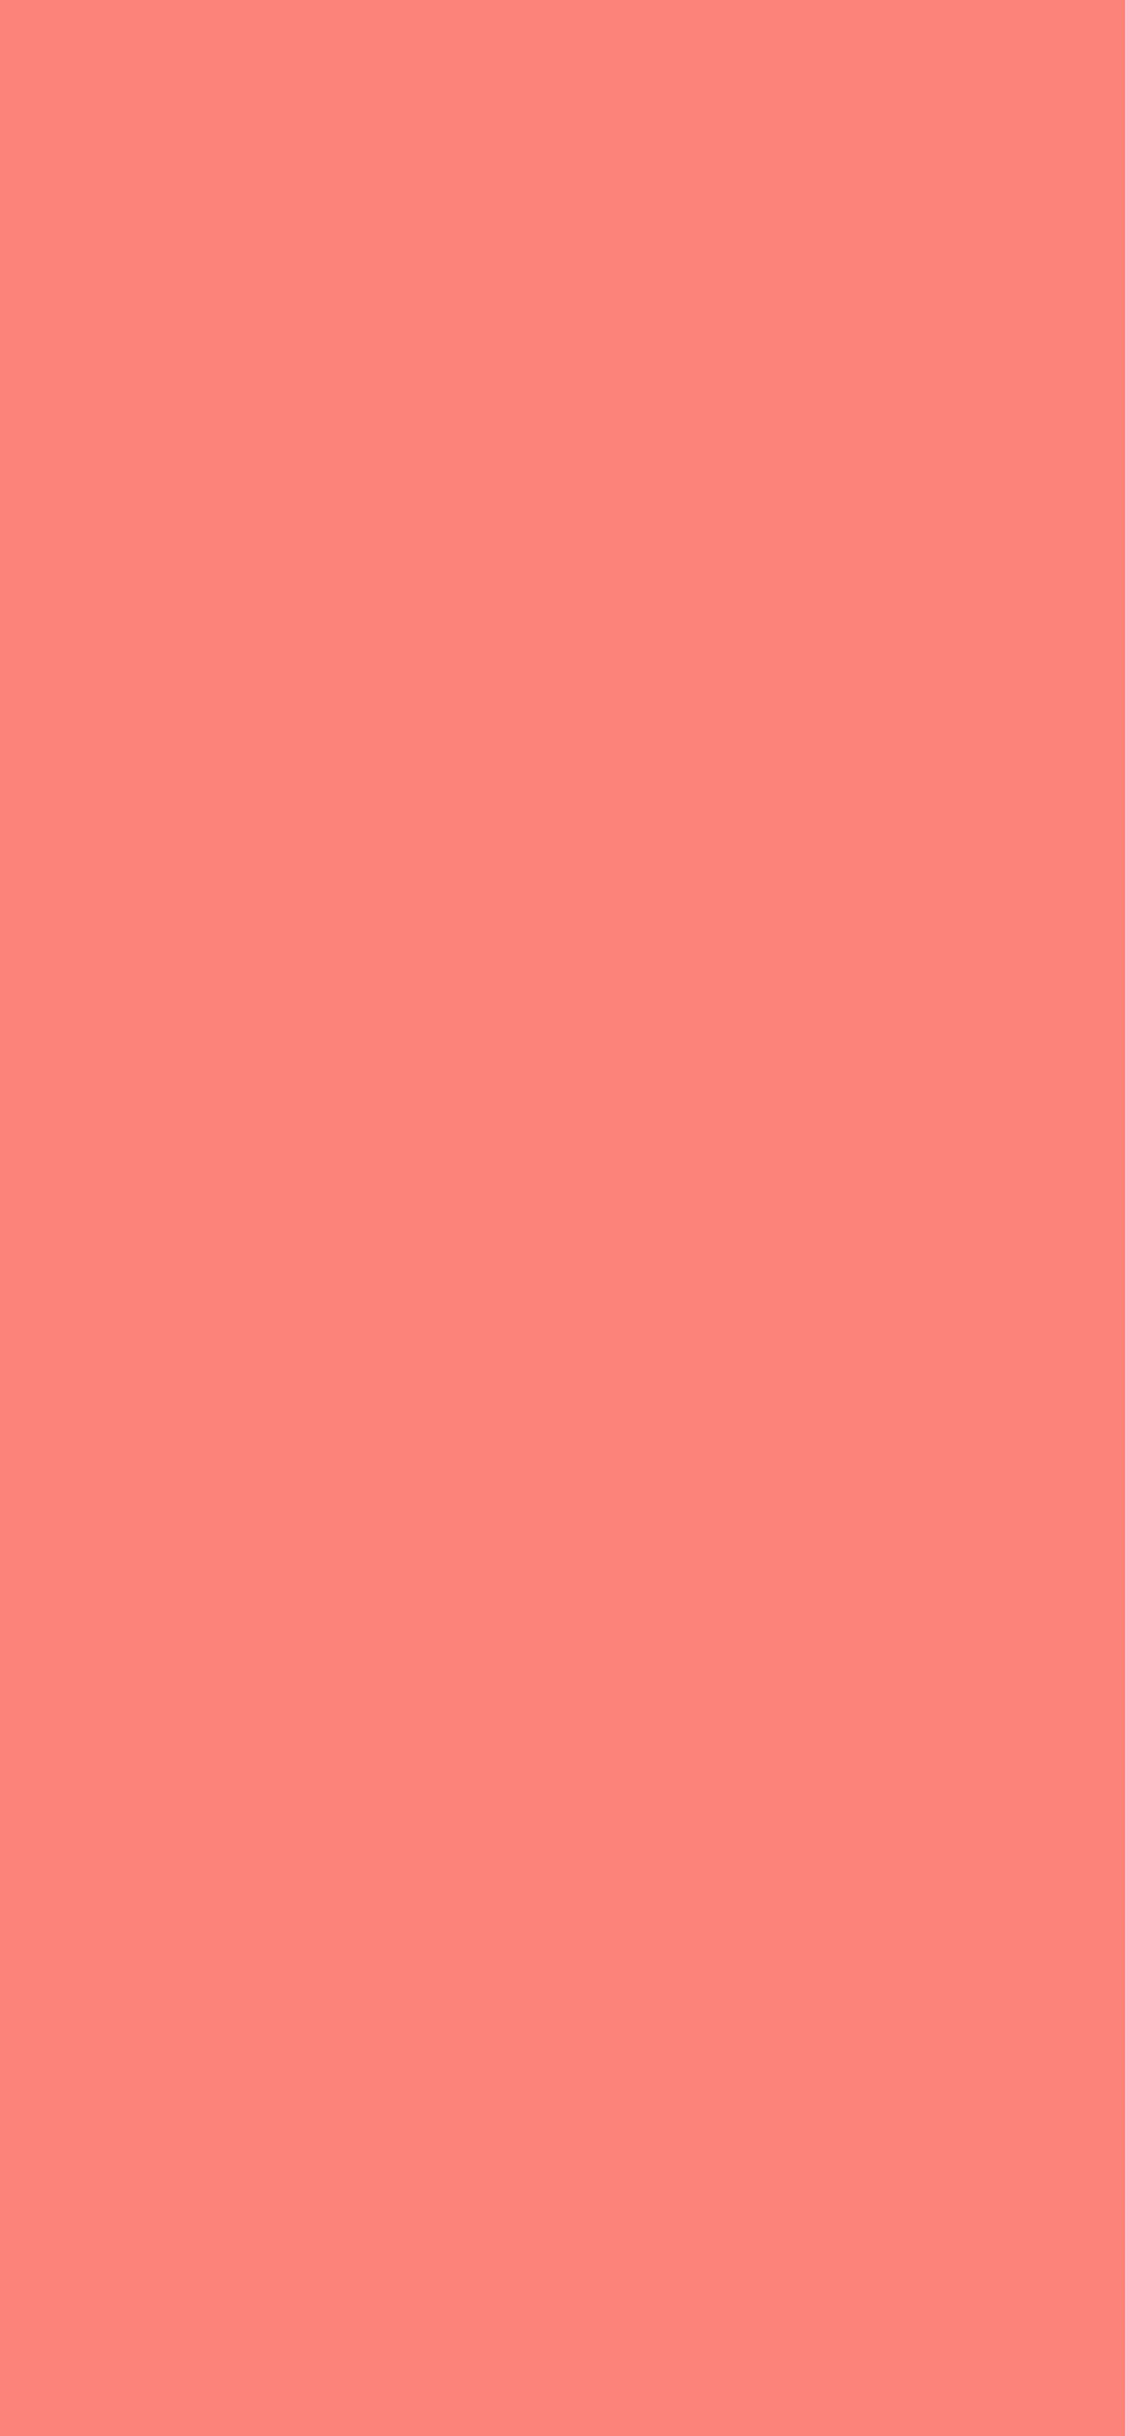 1125x2436 Coral Pink Solid Color Background